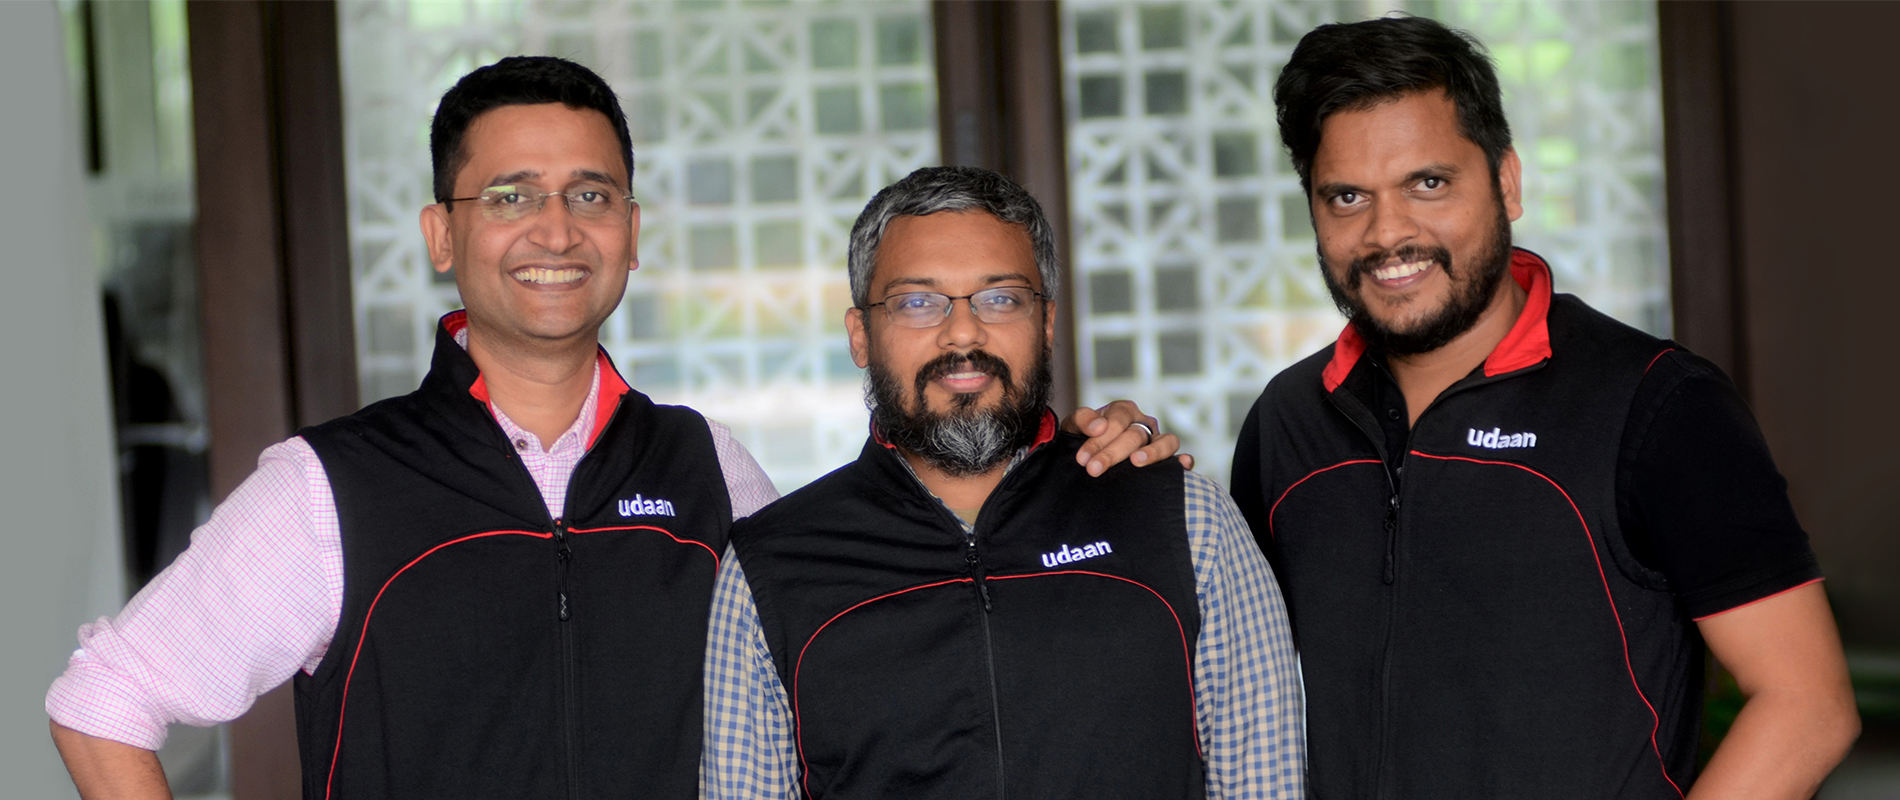 From left to right, Amod Malviya, Vaibhav Gupta and Sujeet Kumar, co-founders of Udaan, similing at the camera